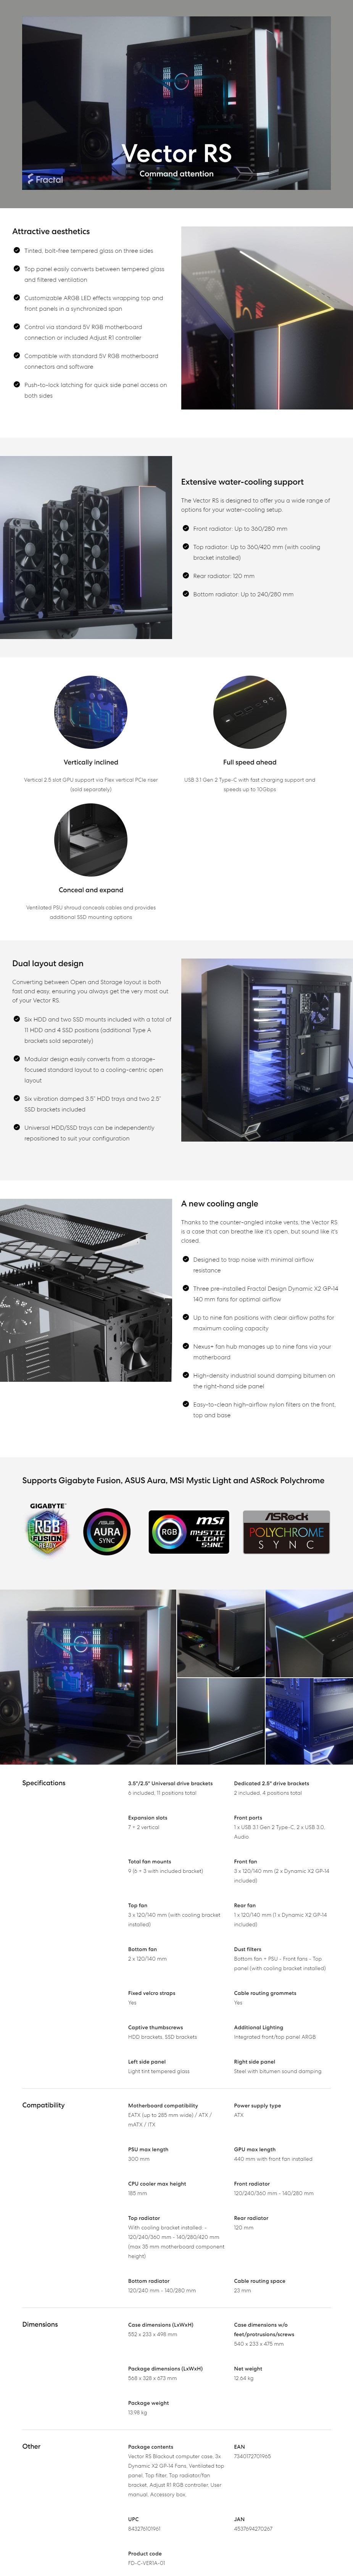 Fractal Design Vector RS Blackout Tempered Glass RGB Mid-Tower E-ATX Case - Desktop Overview 1